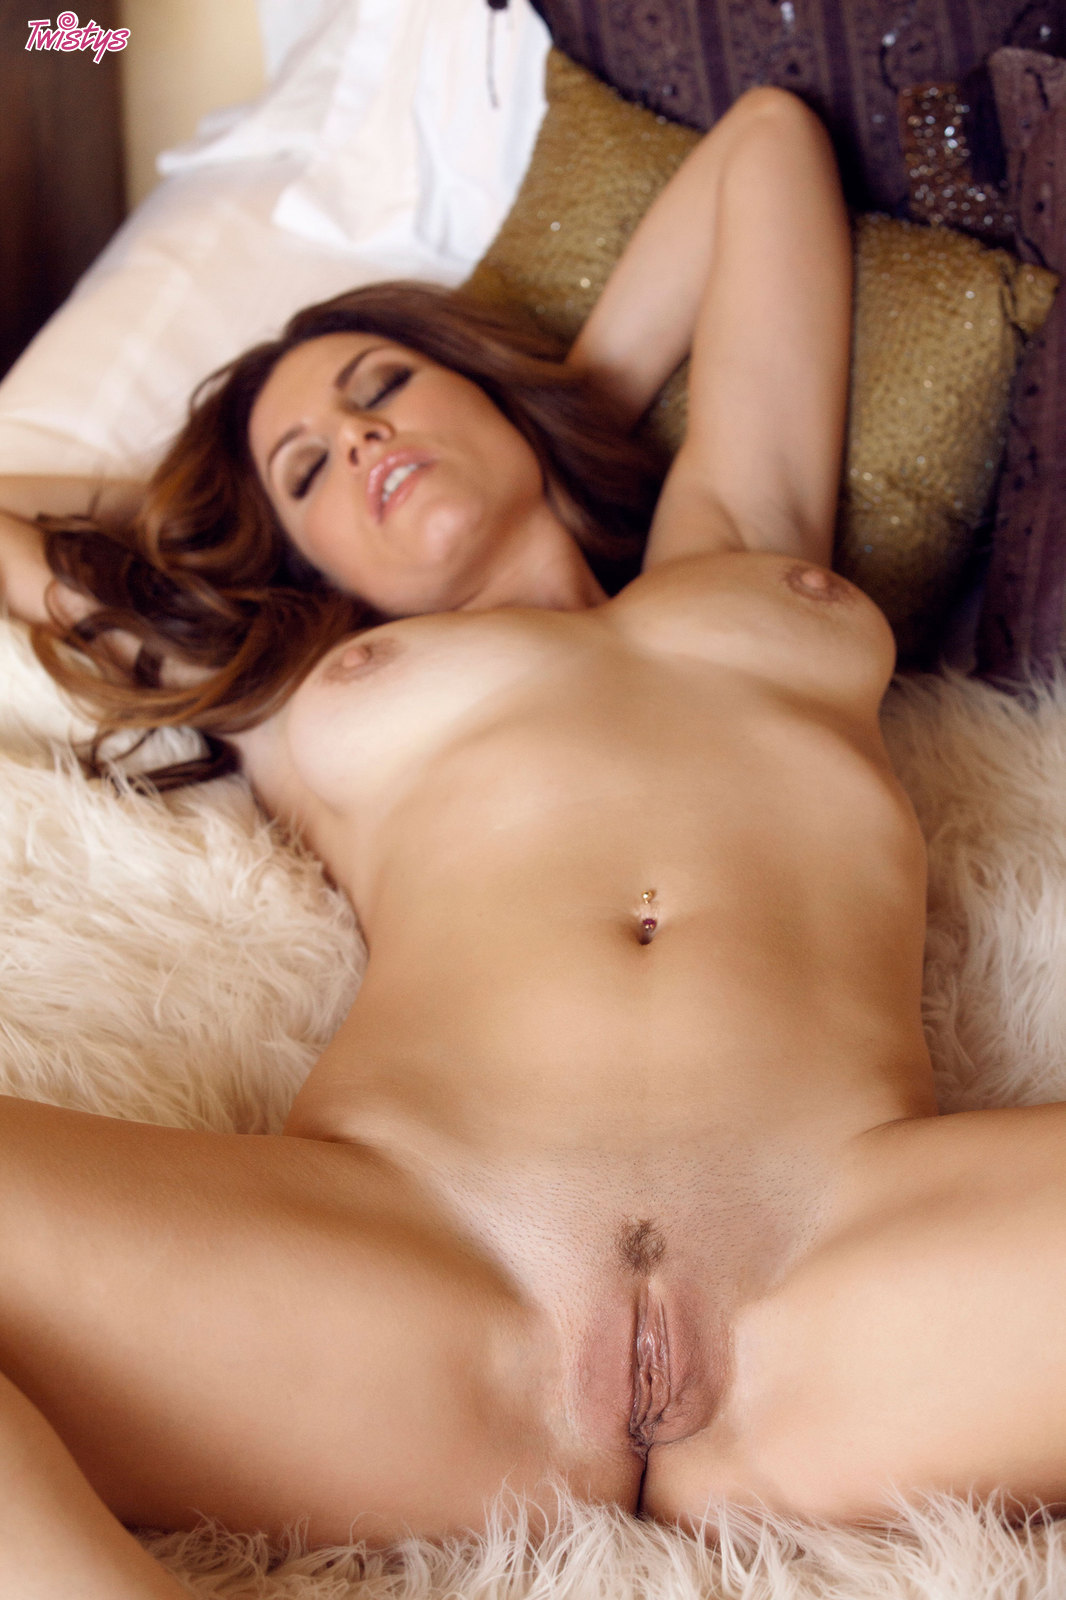 Alyssia kent hot brunette beauty in pov action - 3 part 2